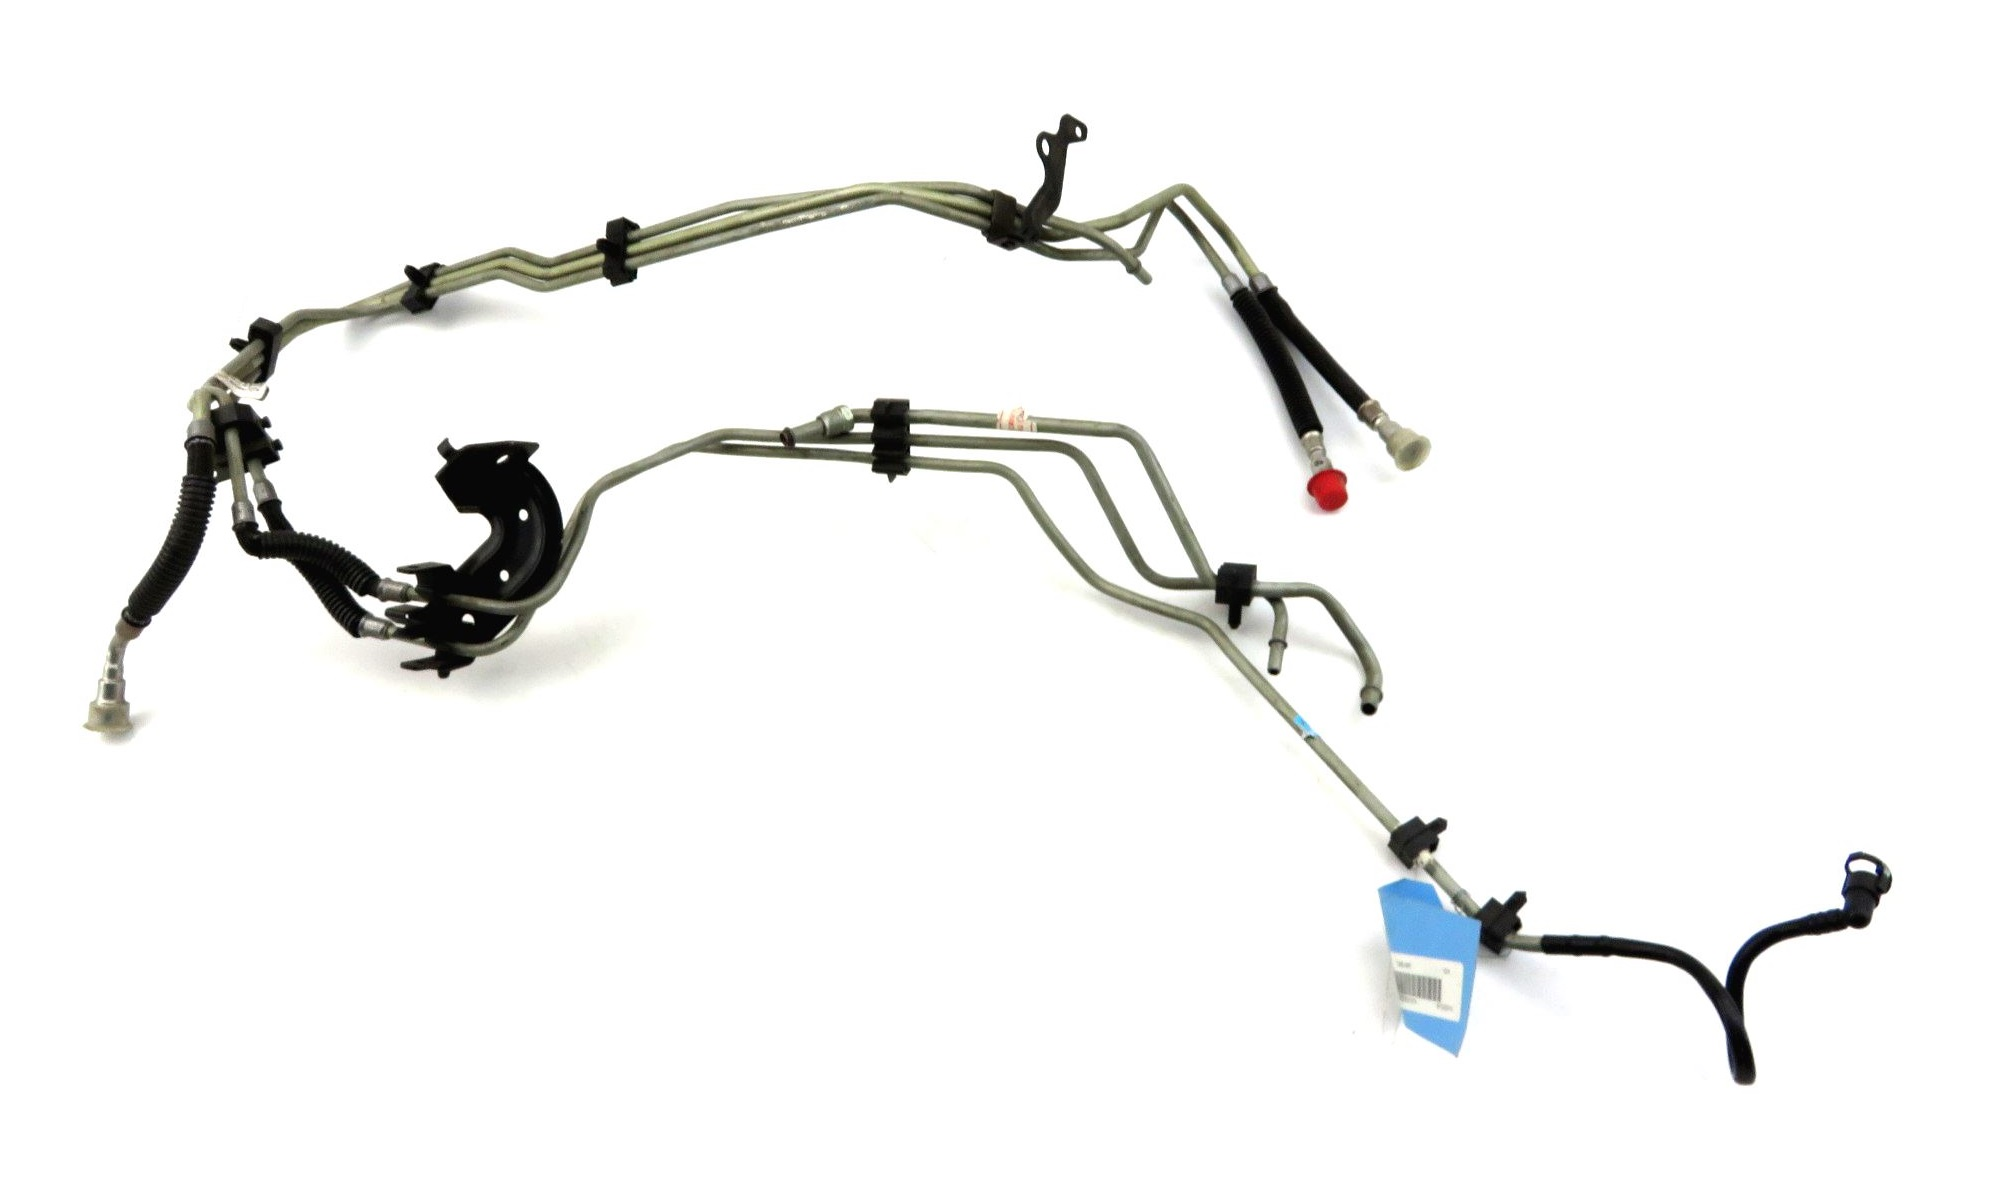 Gm Genuine Oem Escalade Yukon Rear Fuel Feed